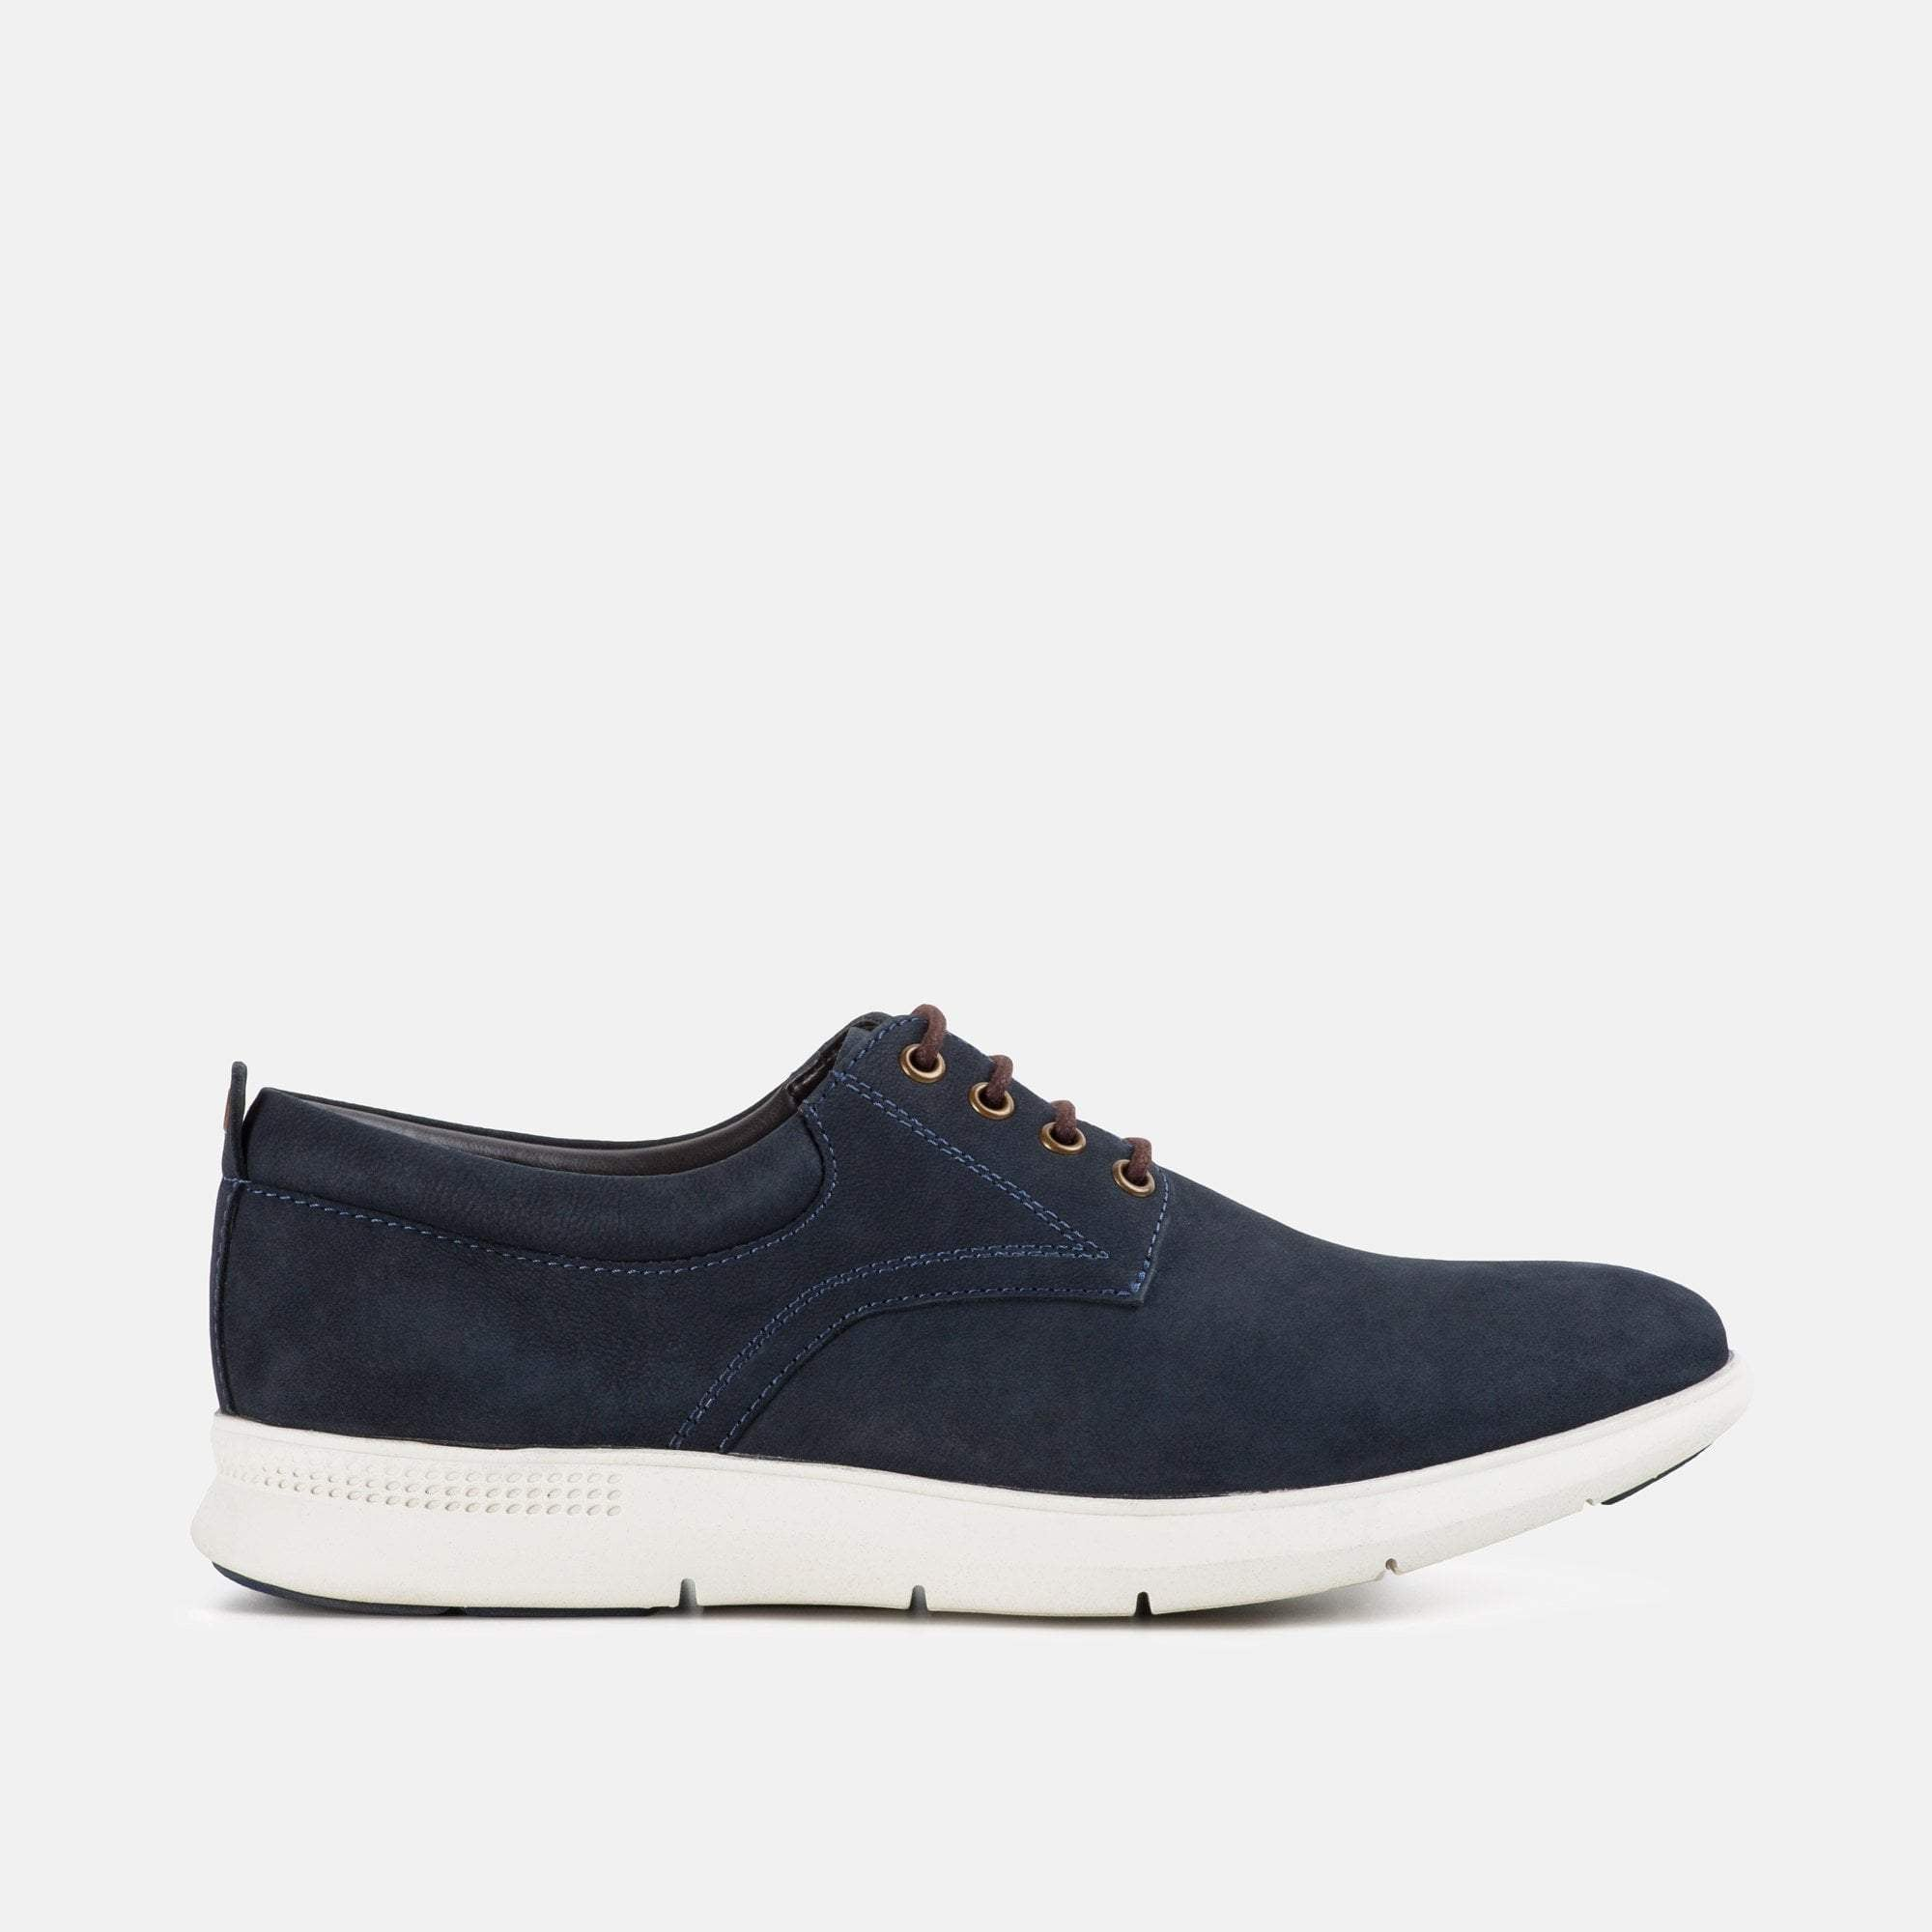 MORRISON NAVY CASUAL DERBY SHOE